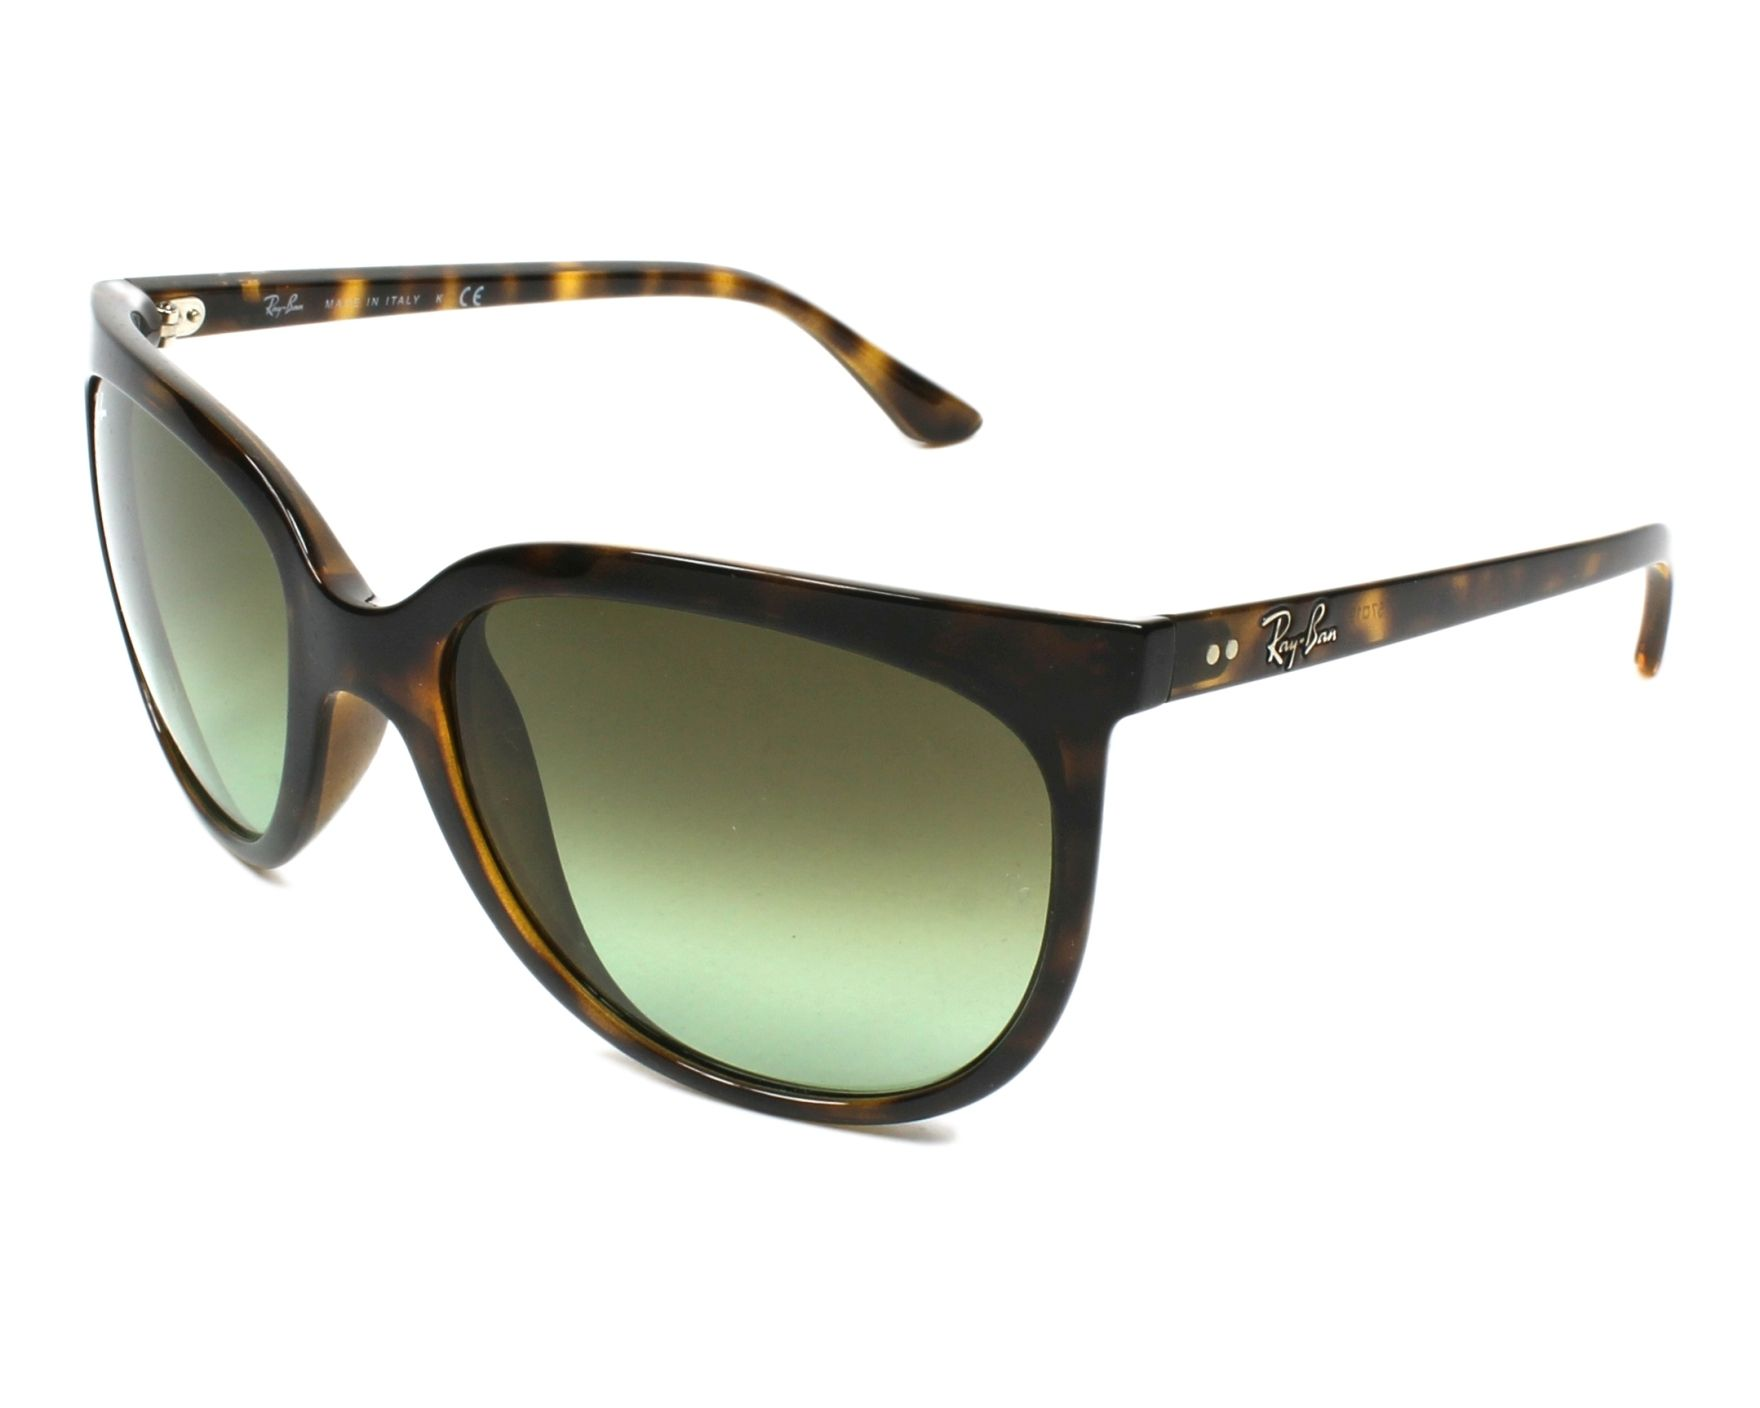 3c1a569ffc0 Ray Ban Cats 1000 Buy Online « Heritage Malta